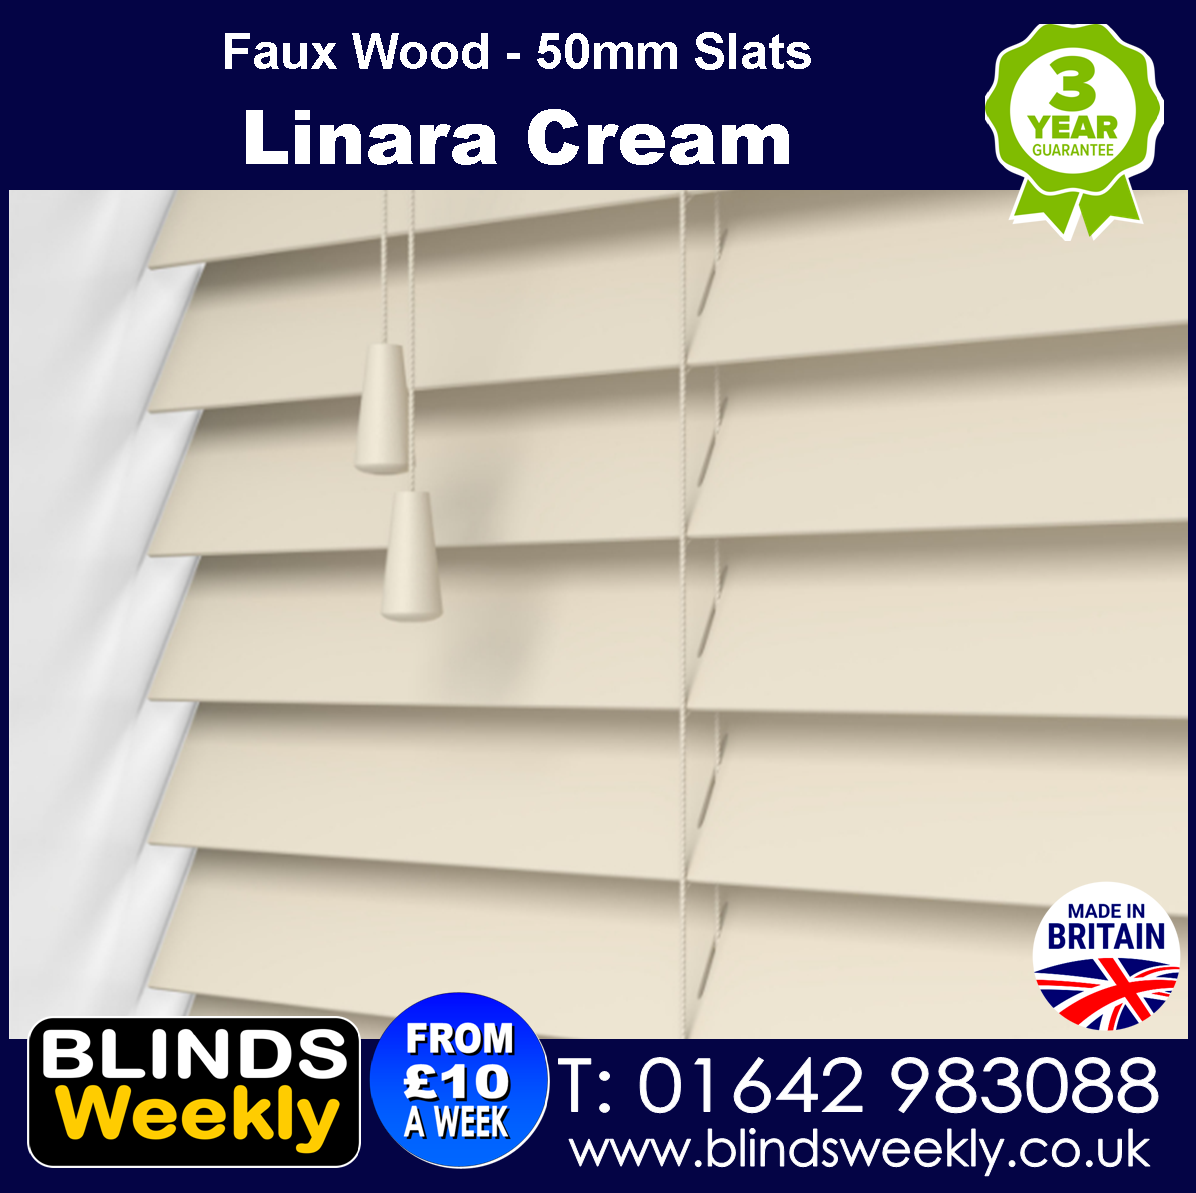 Linara Cream 50mm Faux Wood Blinds from Blinds Weekly